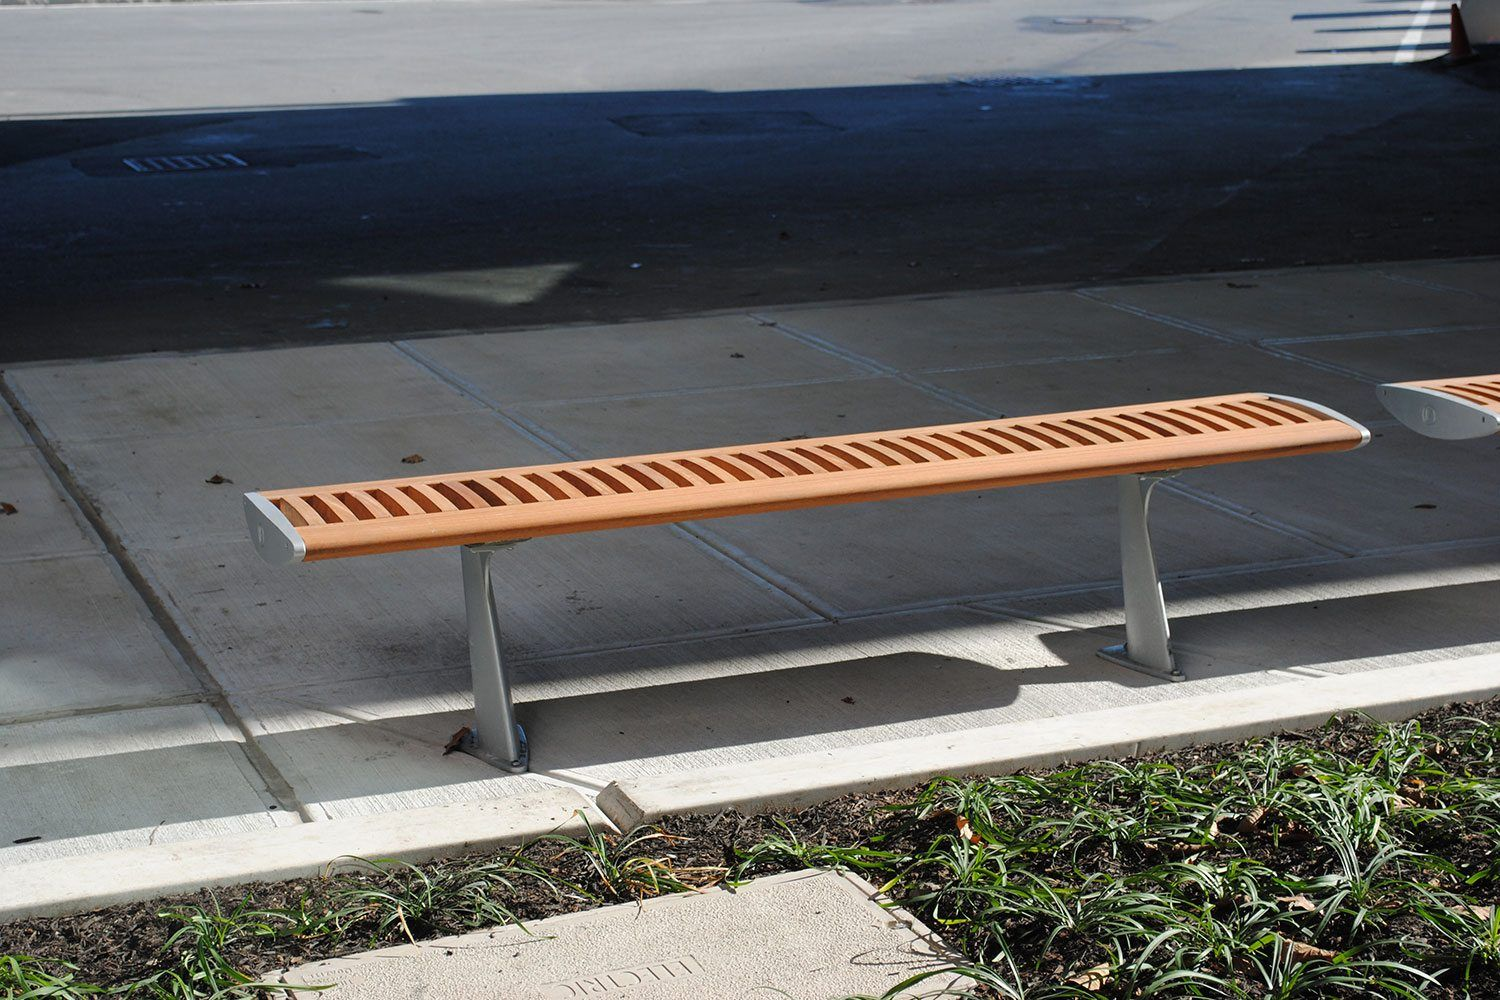 Wood Foil Bench Factory Furniture Furniture Wood Bench